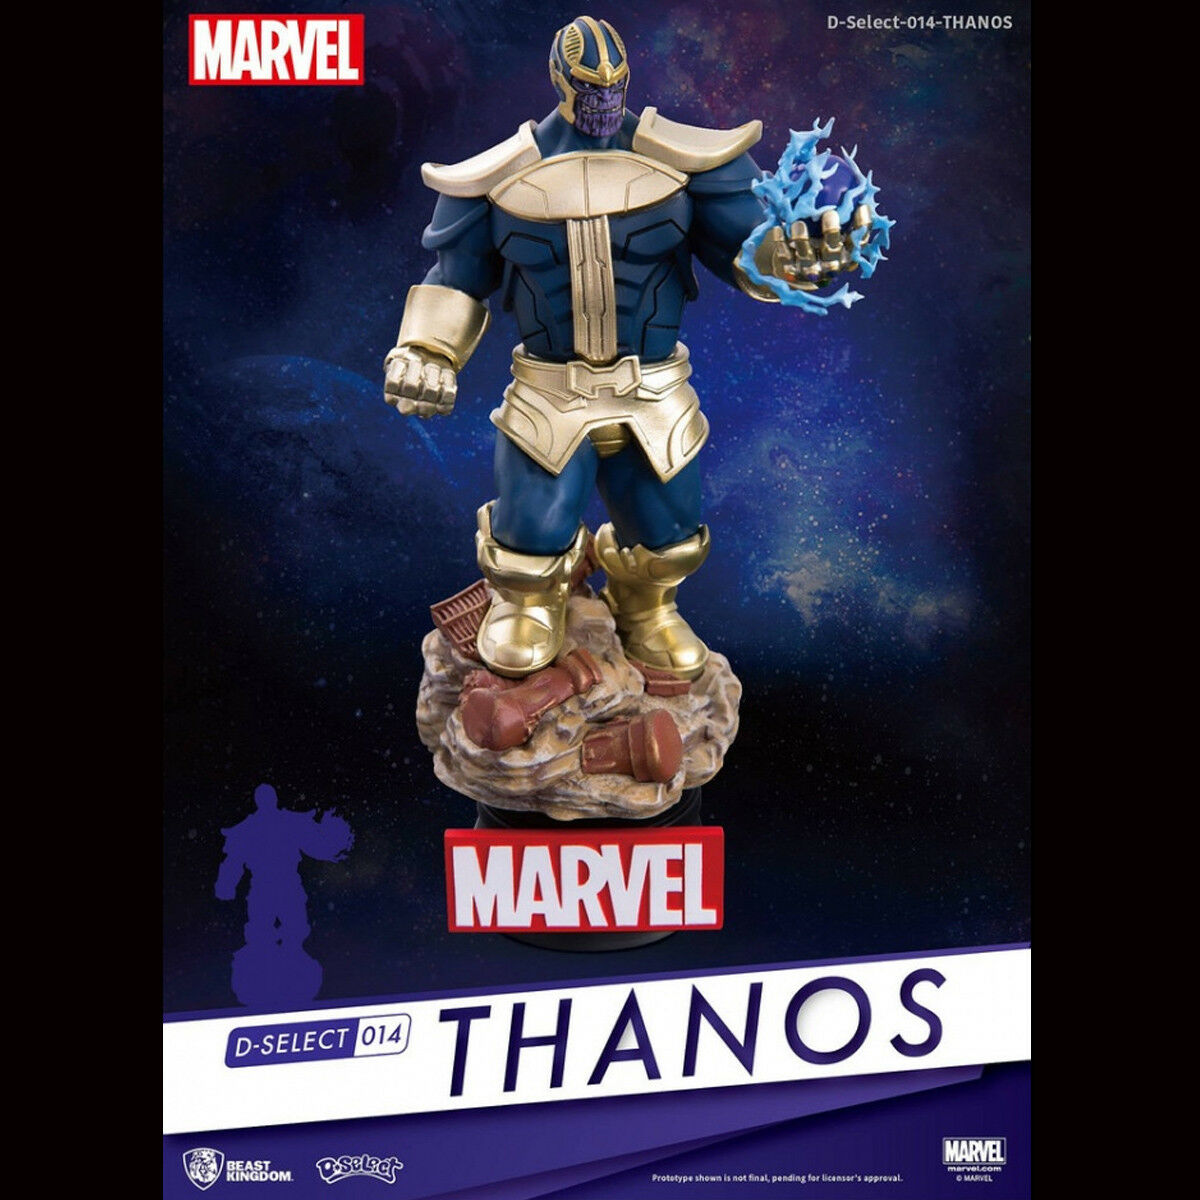 Beast Kingdom D - Select 014 THANOS Marvel Avengers 3 Action Figure Statue Model